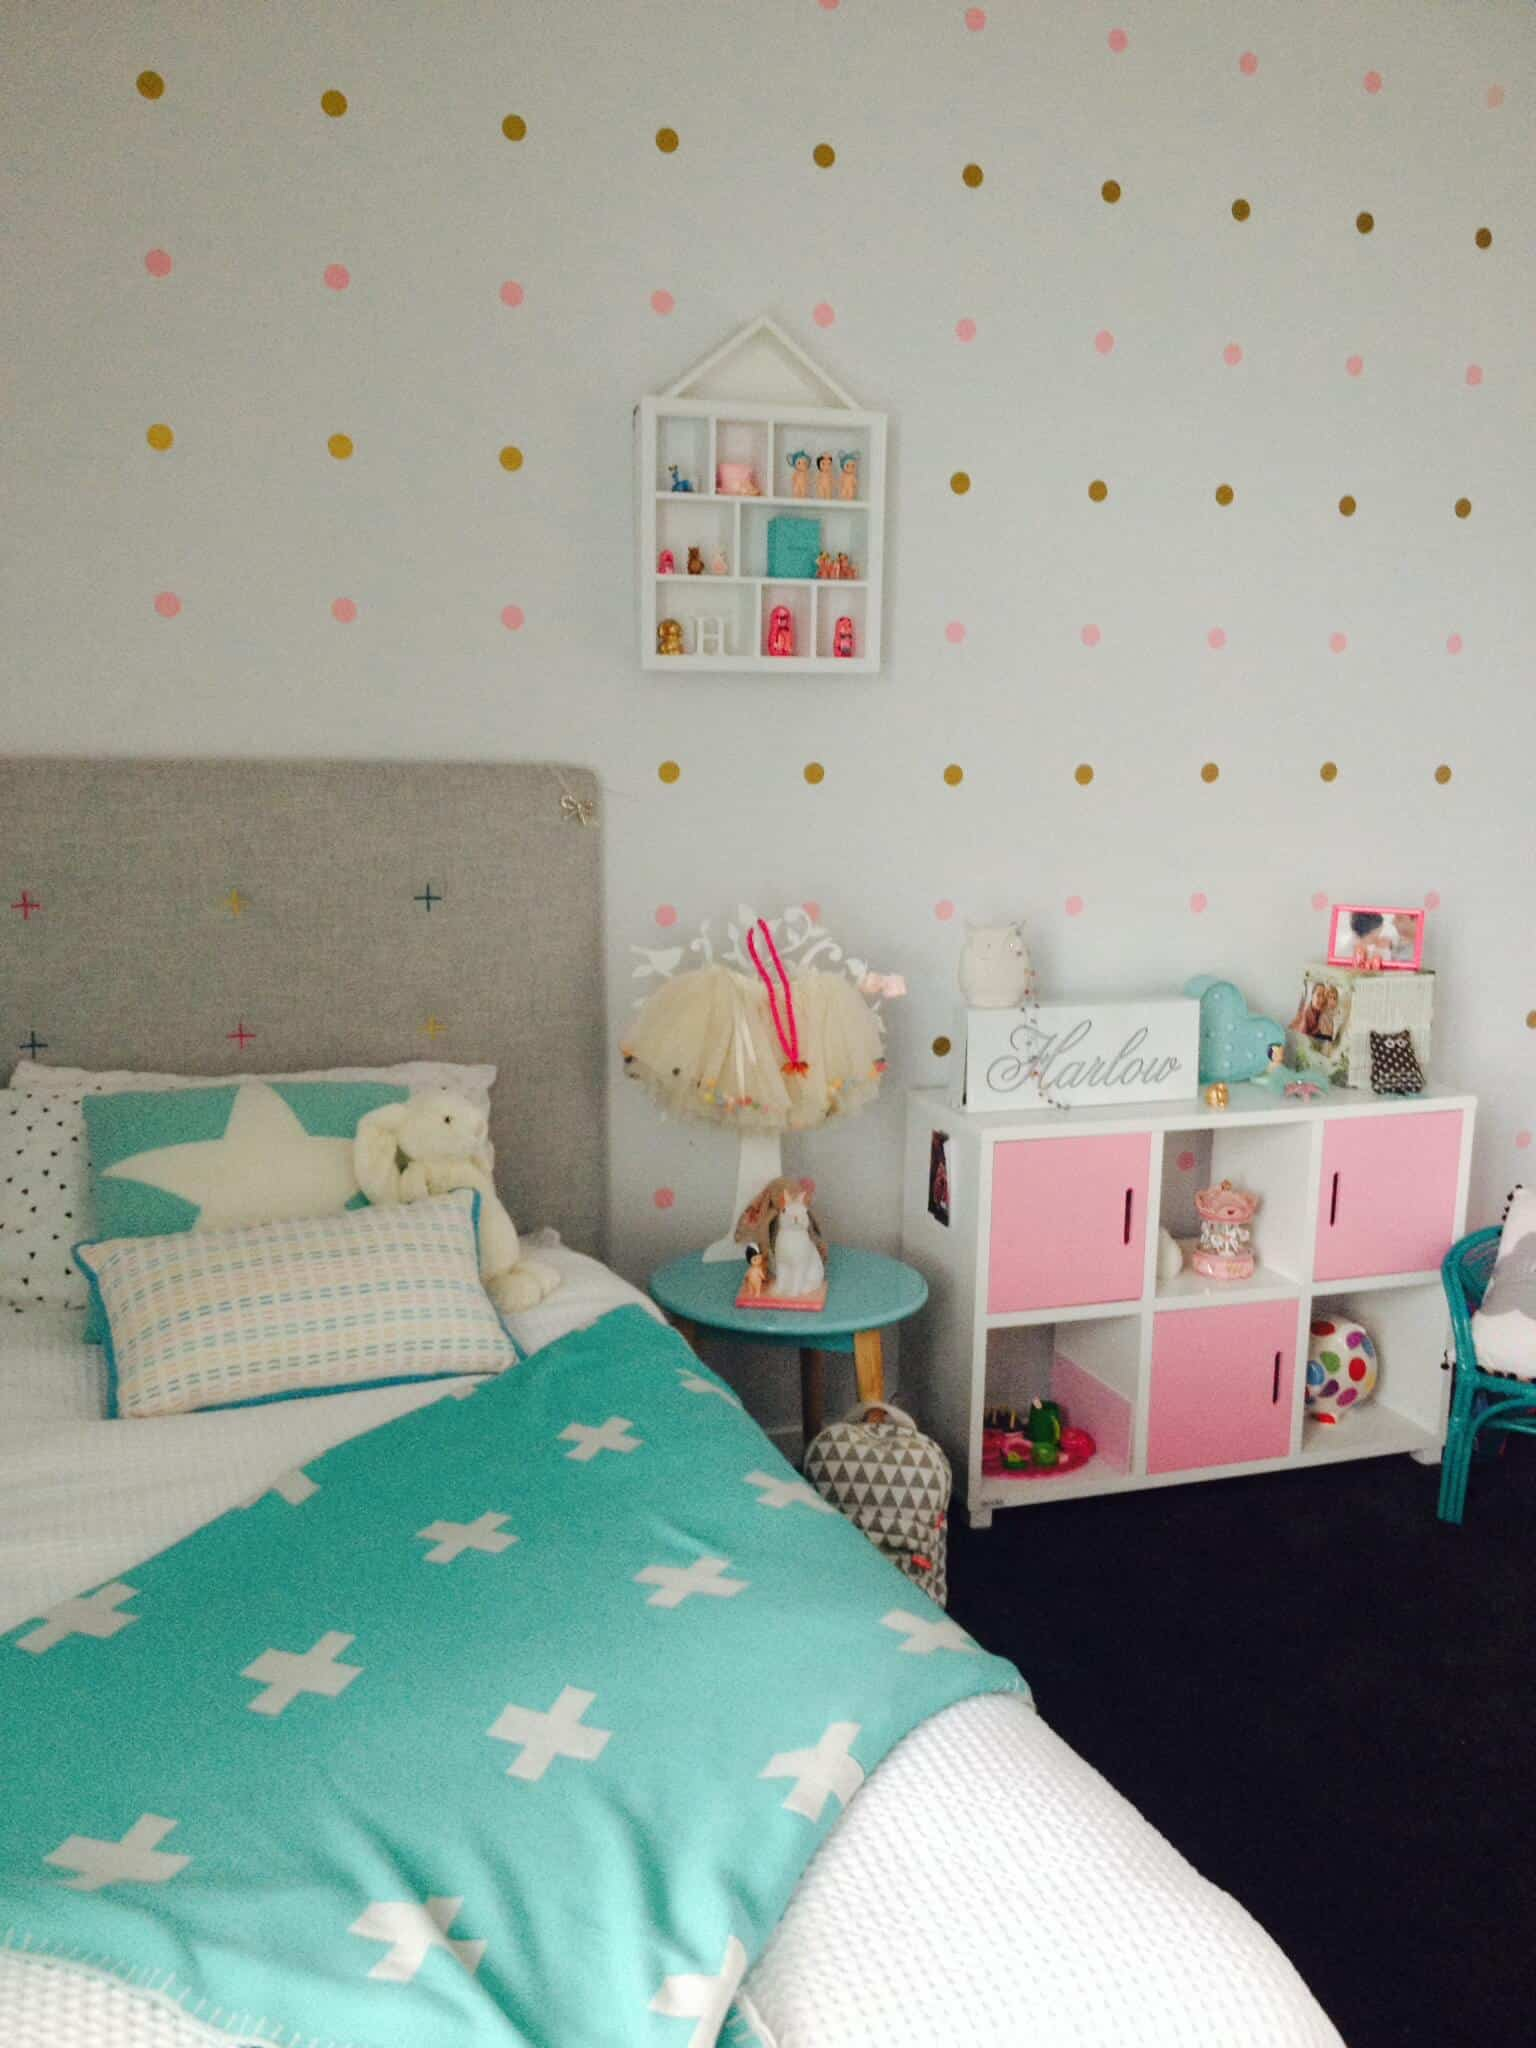 Heatherly Design - Fenwick, children's bedhead, kids room